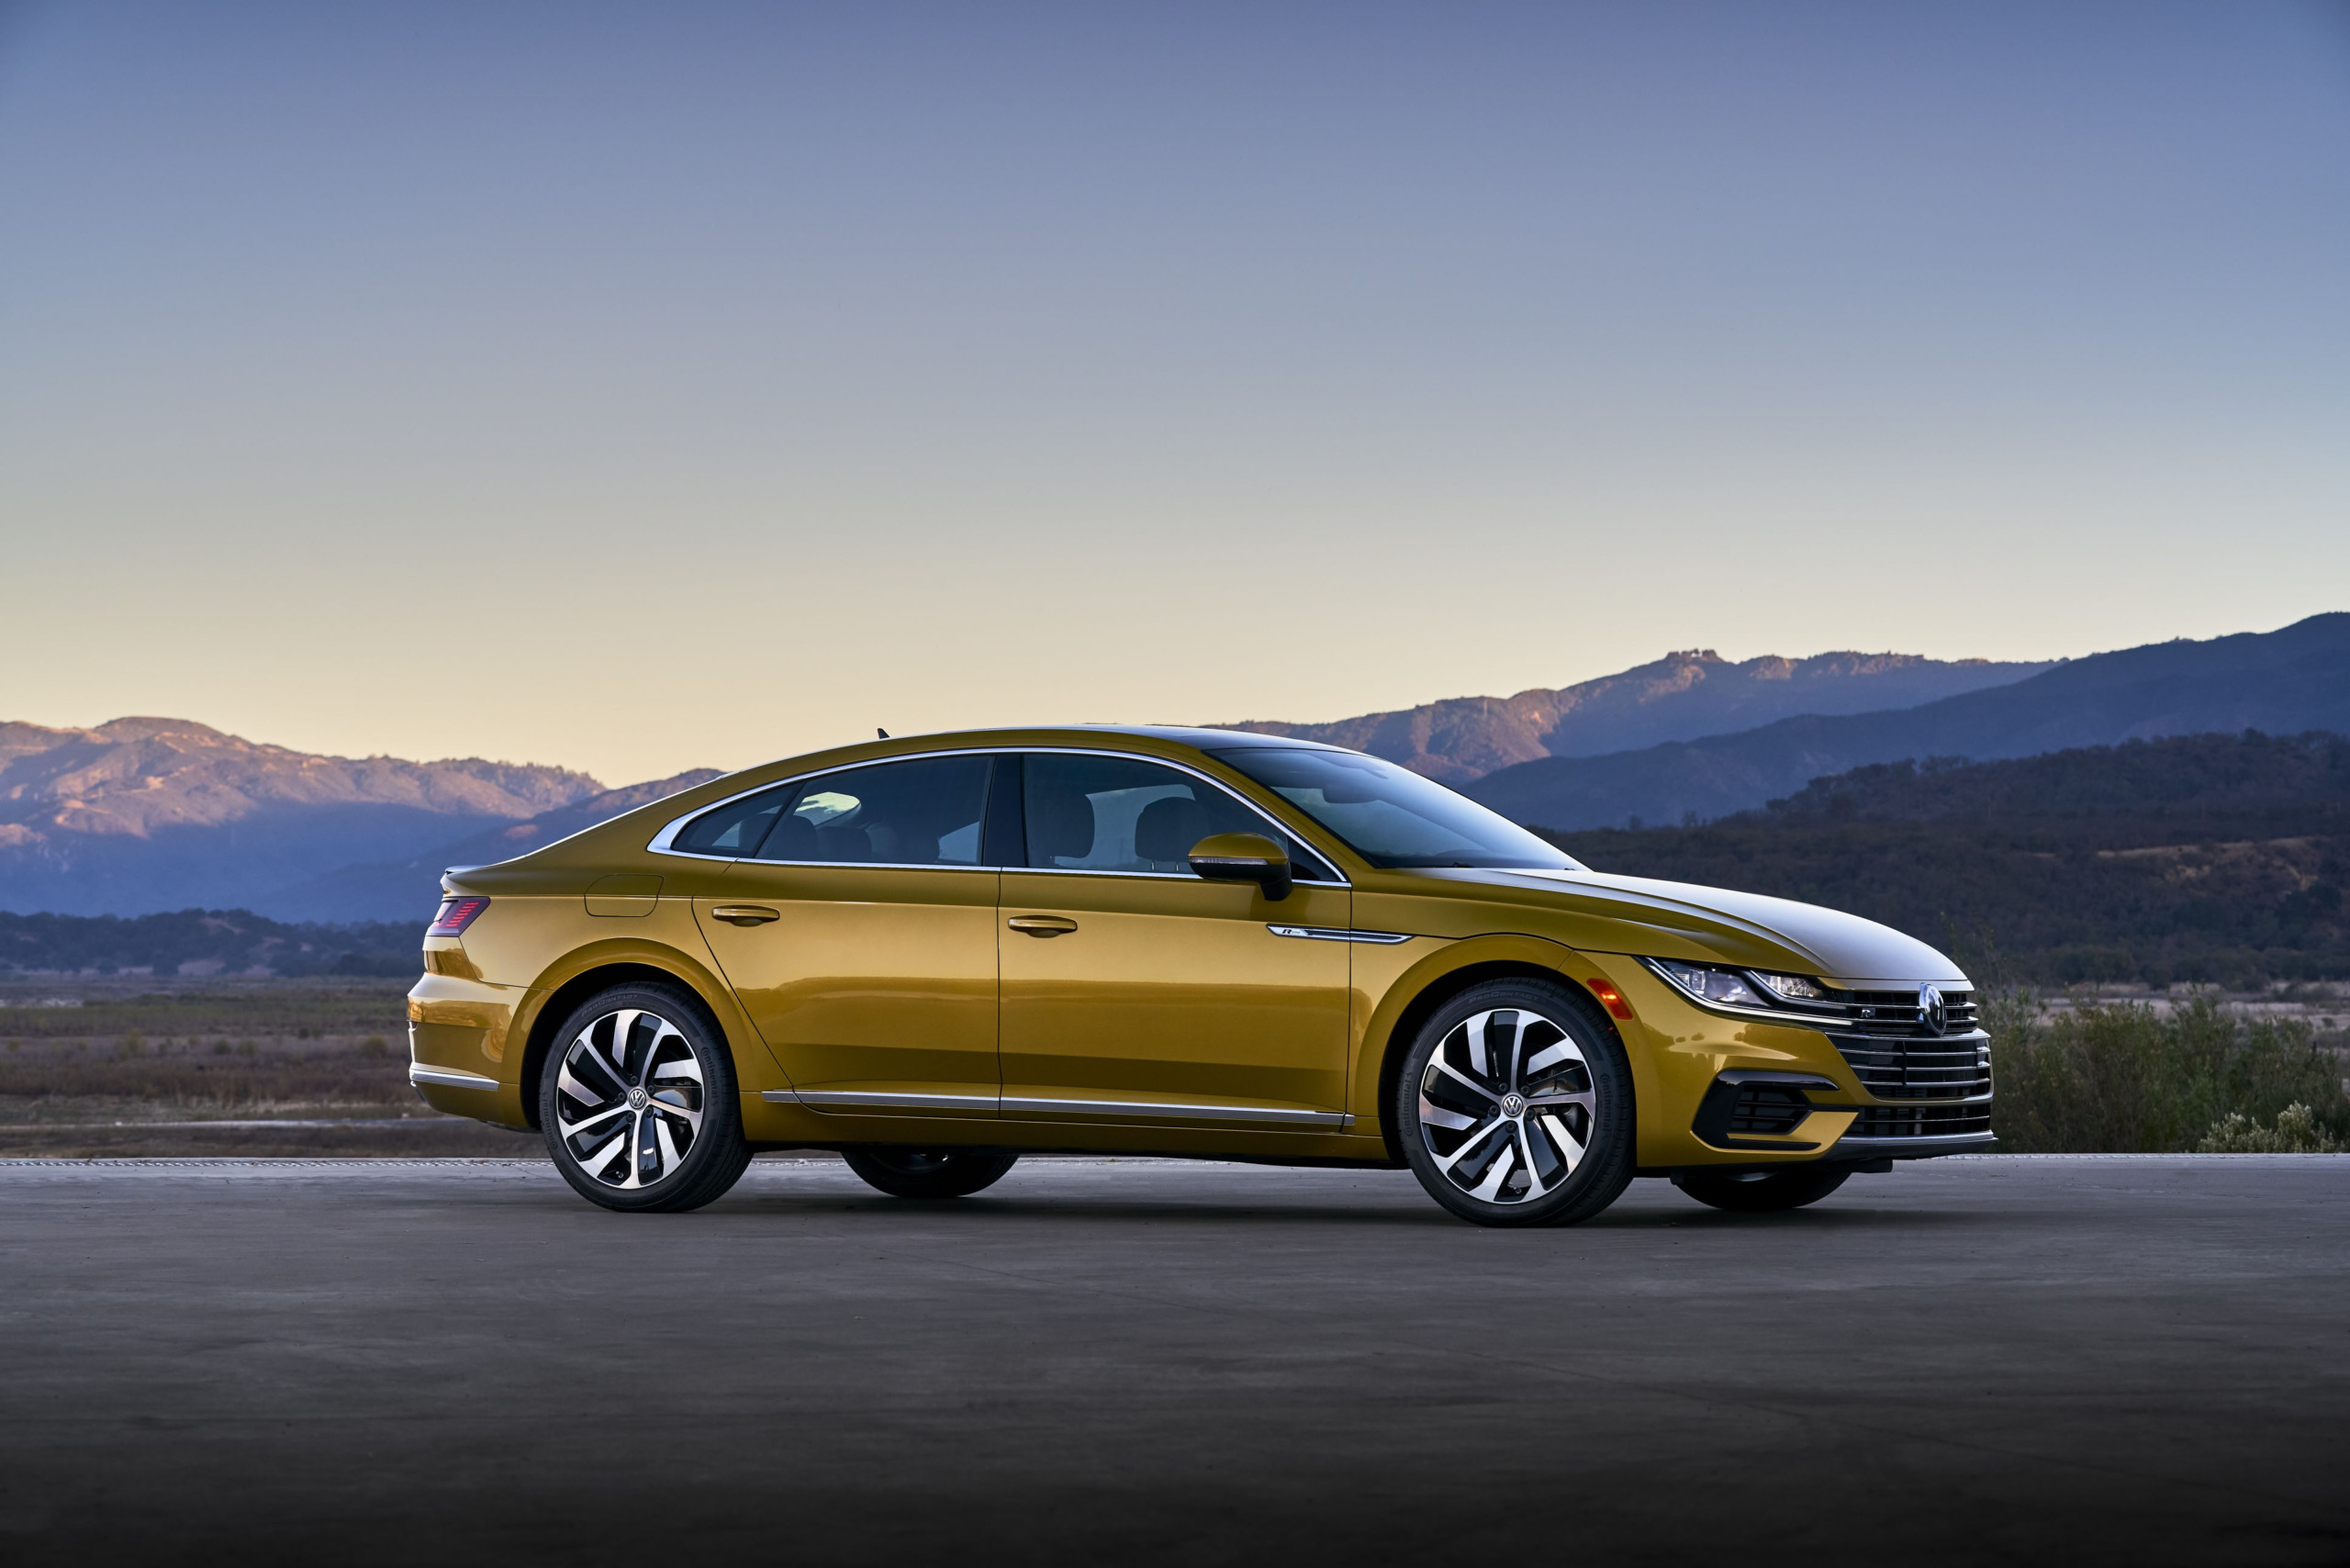 2020 Volkswagen Arteon Review, Pricing, And Specs - 2022 Volkswagen Arteon 0-60 Specification, Changes, Release Date